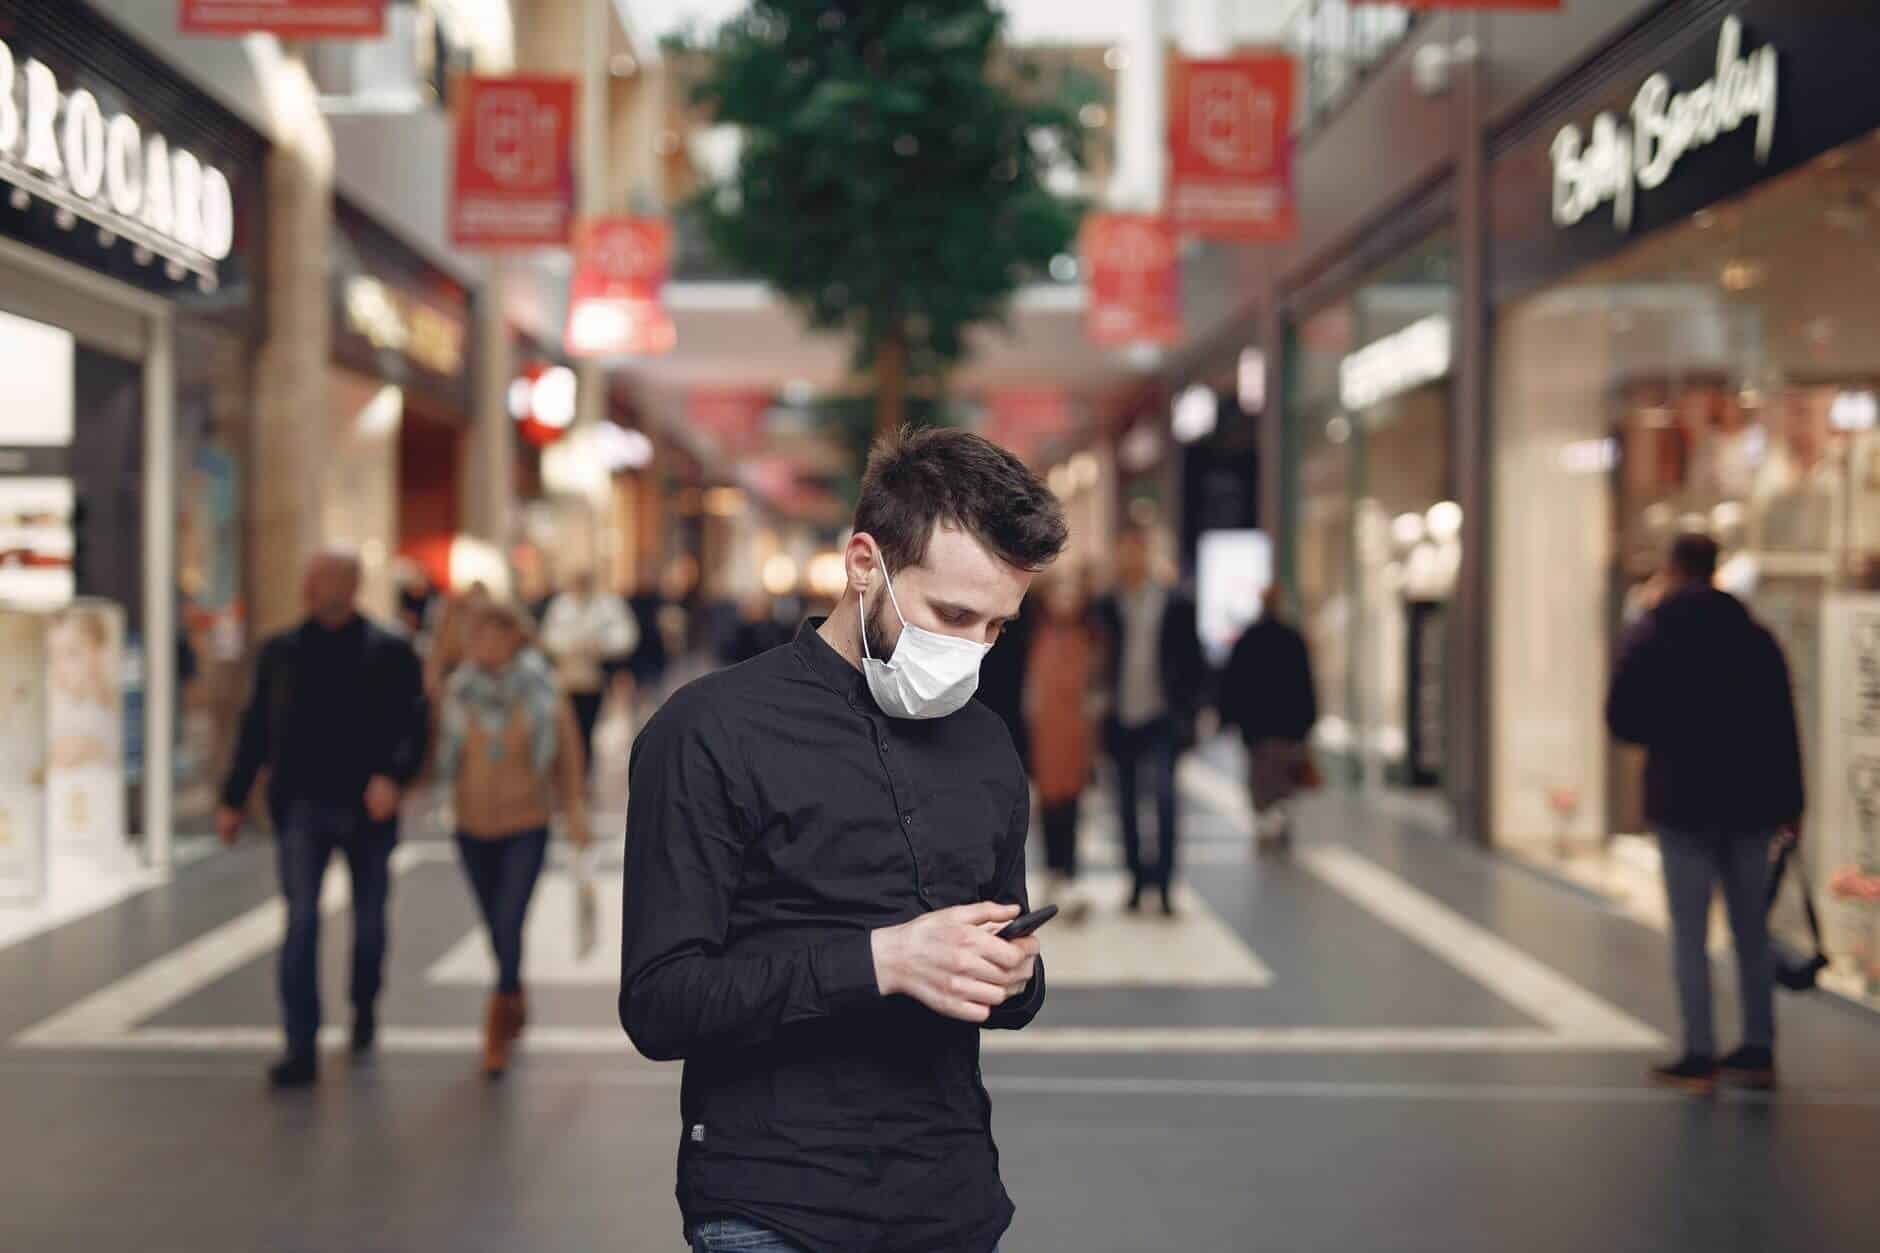 Man With Mask on in Mall